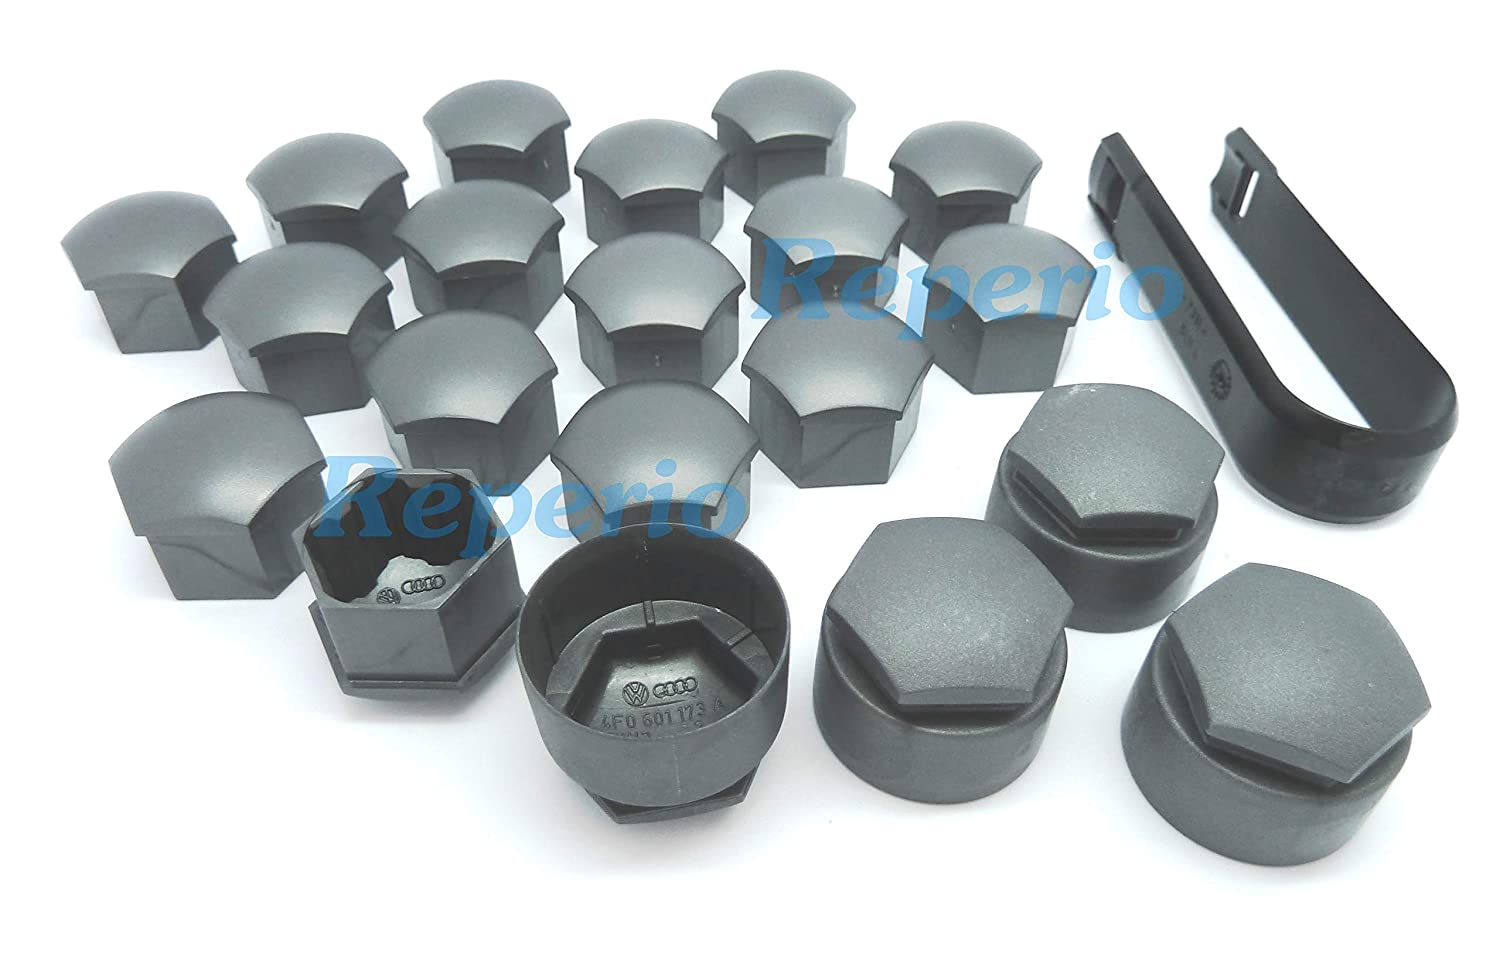 AUTOUTLET 20Pcs Black Wheel Nut Caps Bolt Covers 17mm Universal including 16 Standard Ones 4 Locking Ones Removal Tool